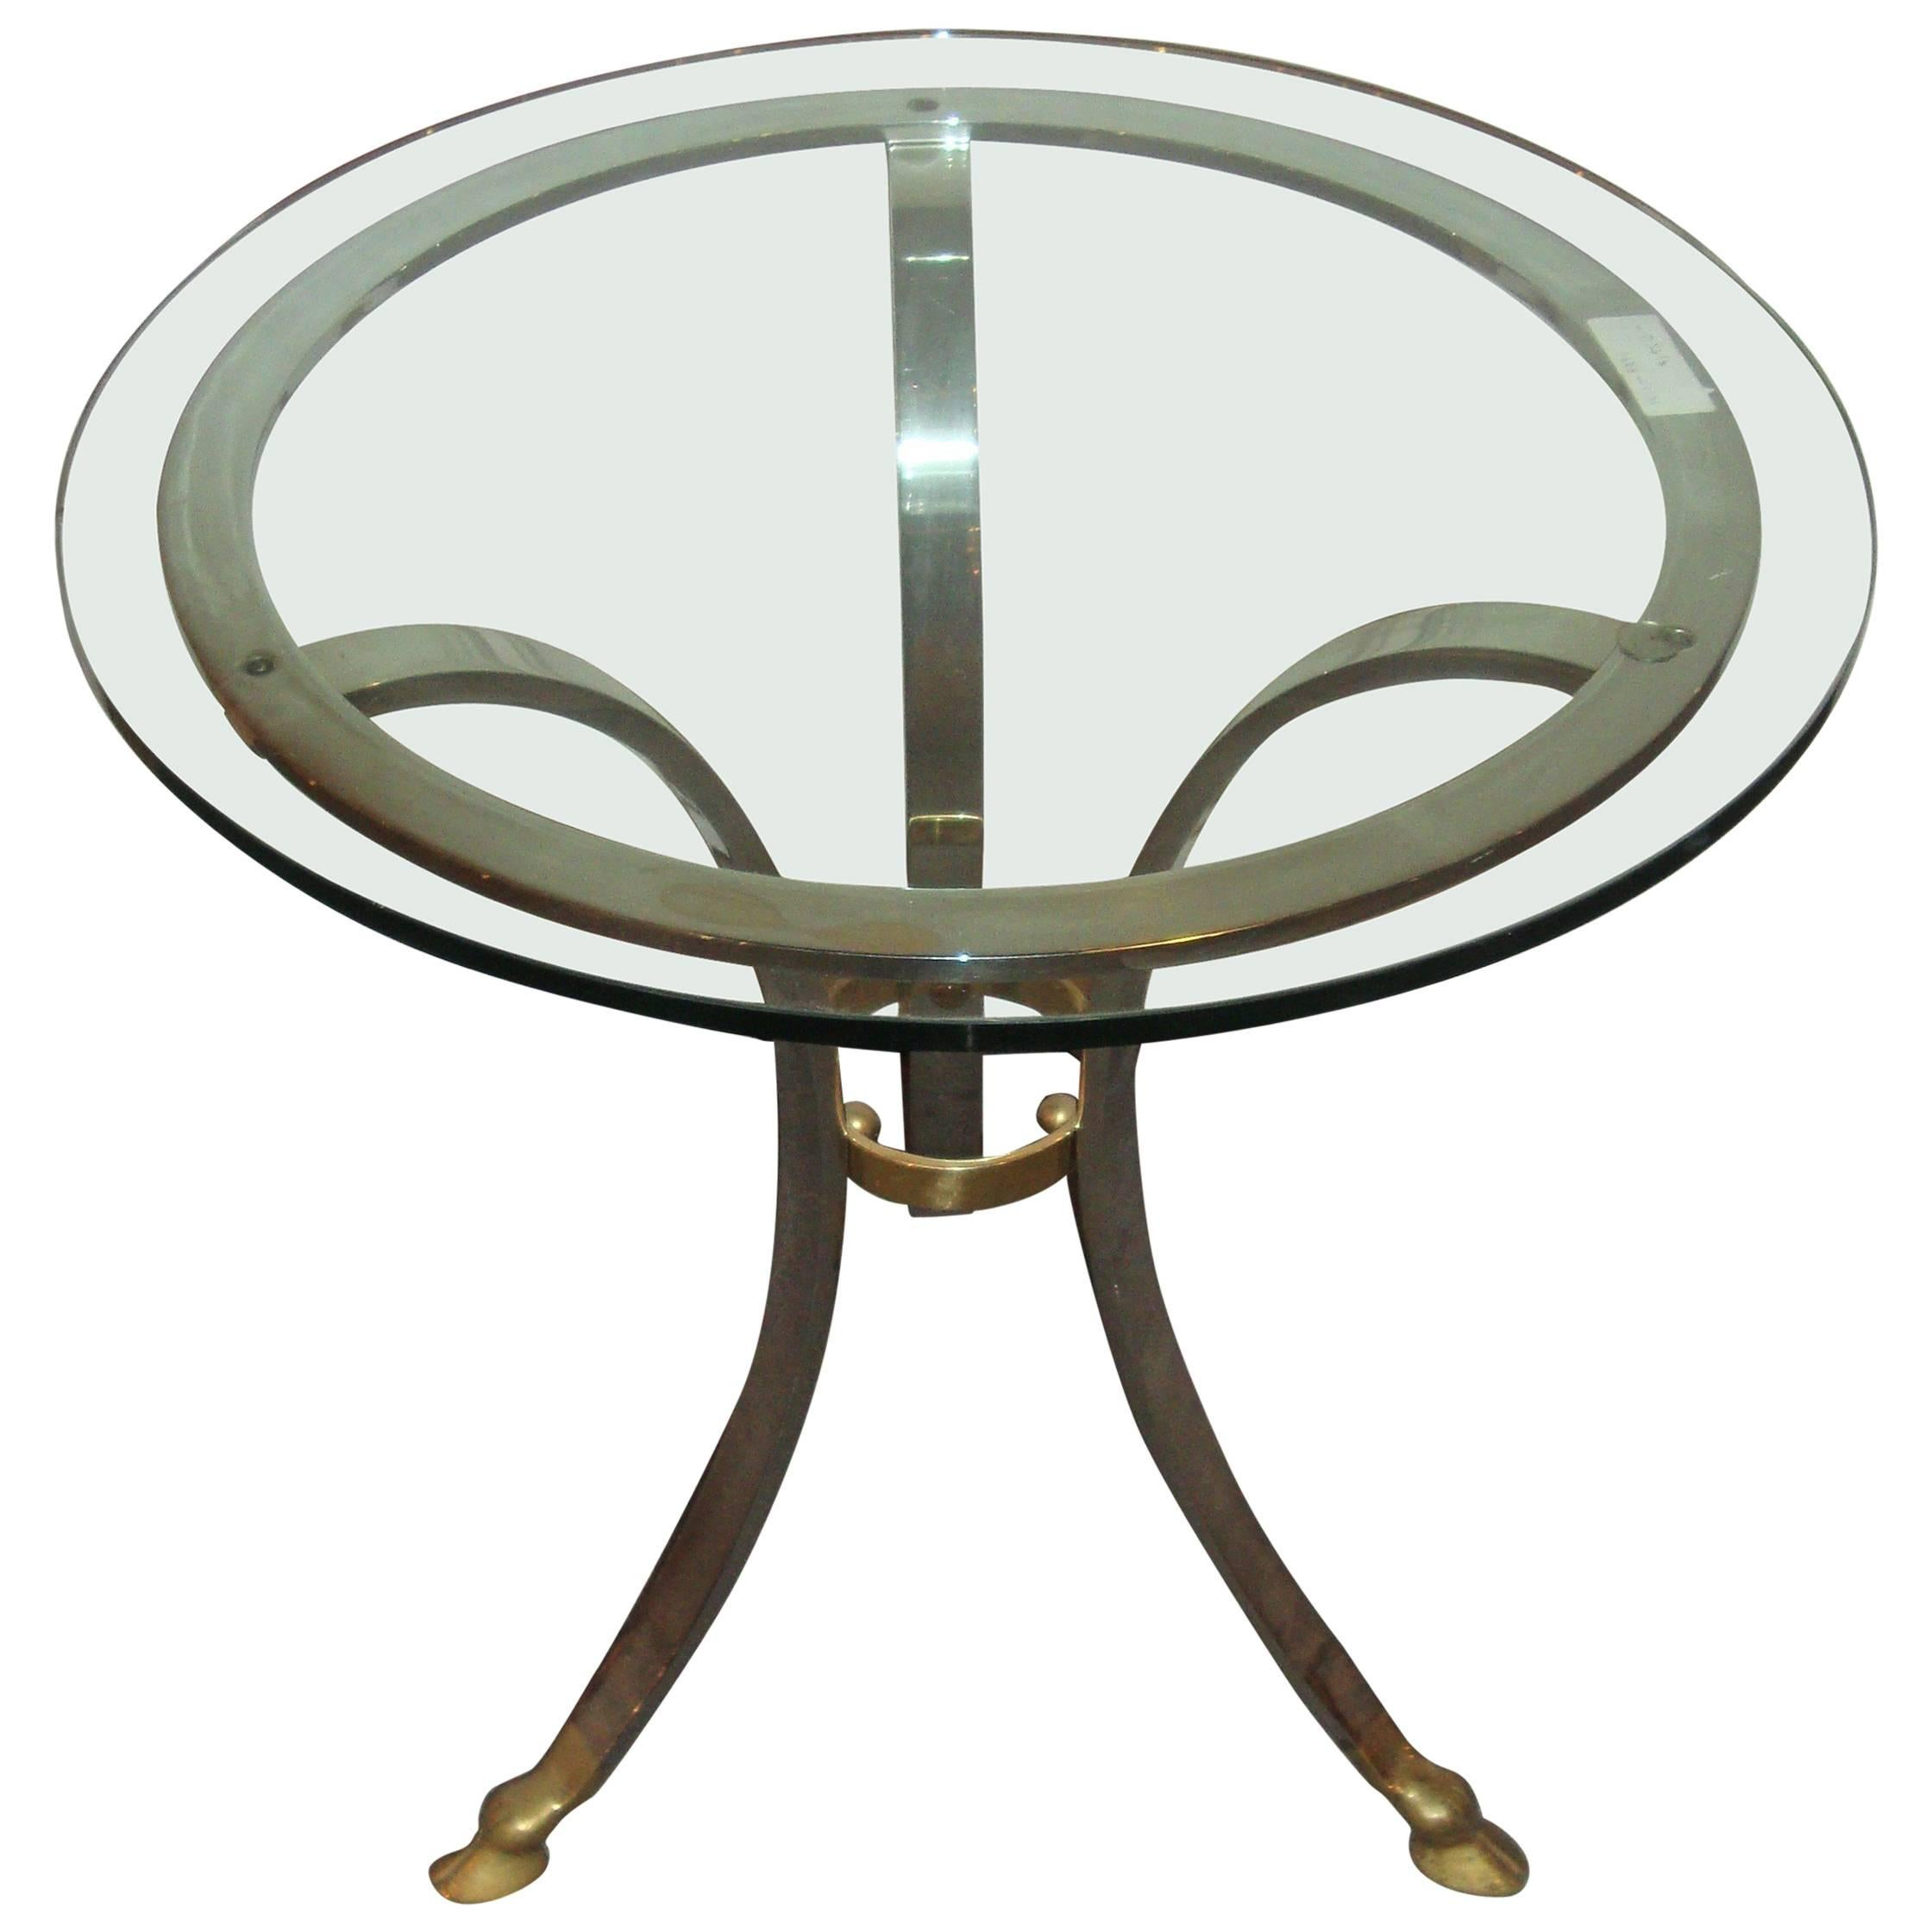 Maison Baques Style Glass Top Center Table With Brass and Steel Base Claw Feet